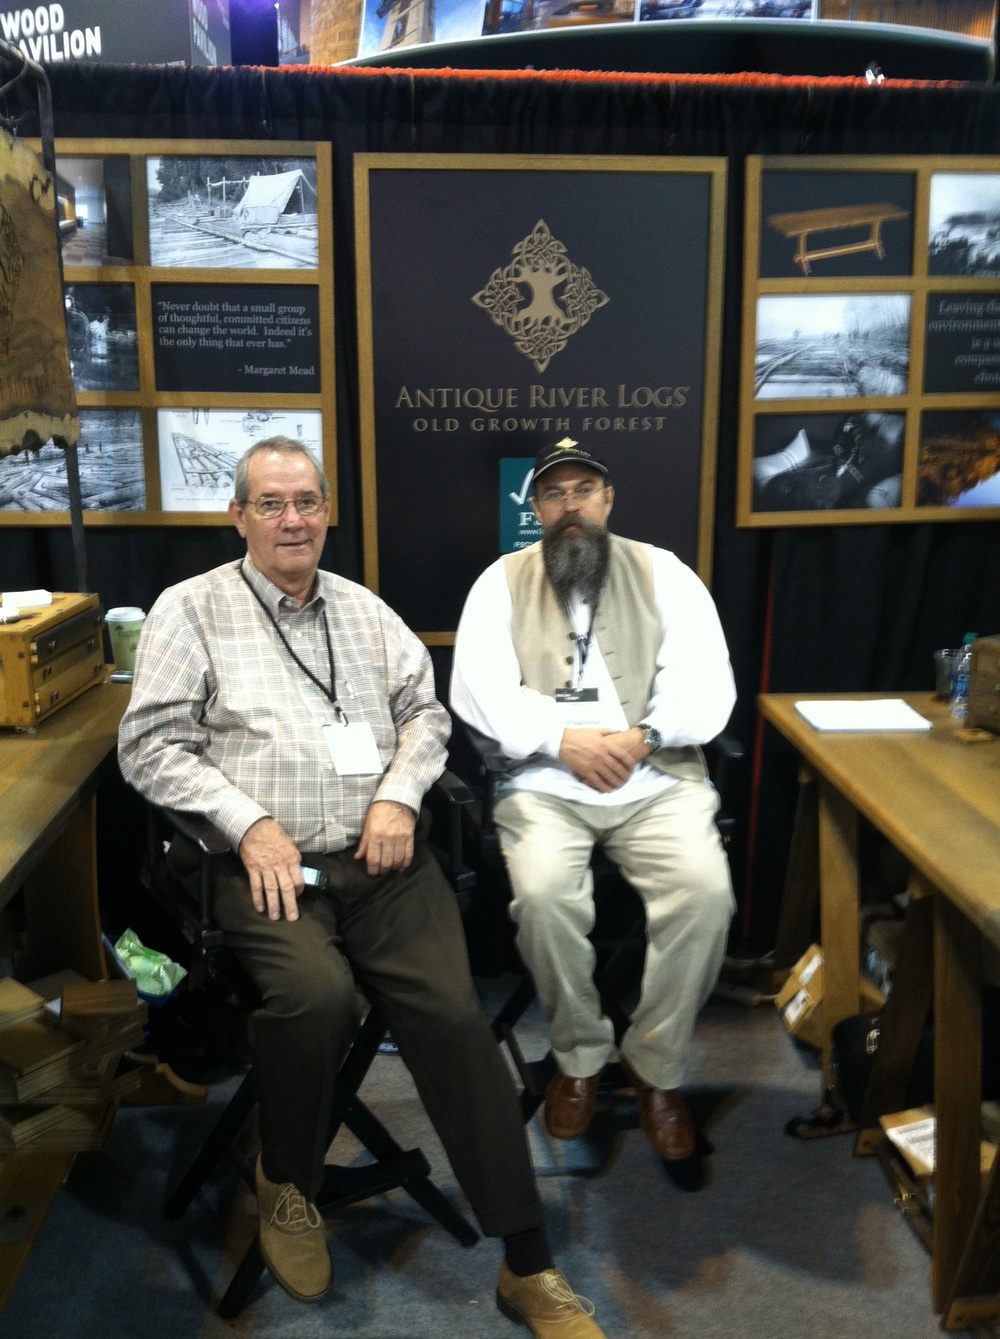 Ben and William at the 2013 AIA (American Institute of Architects) Expo in Denver, CO.